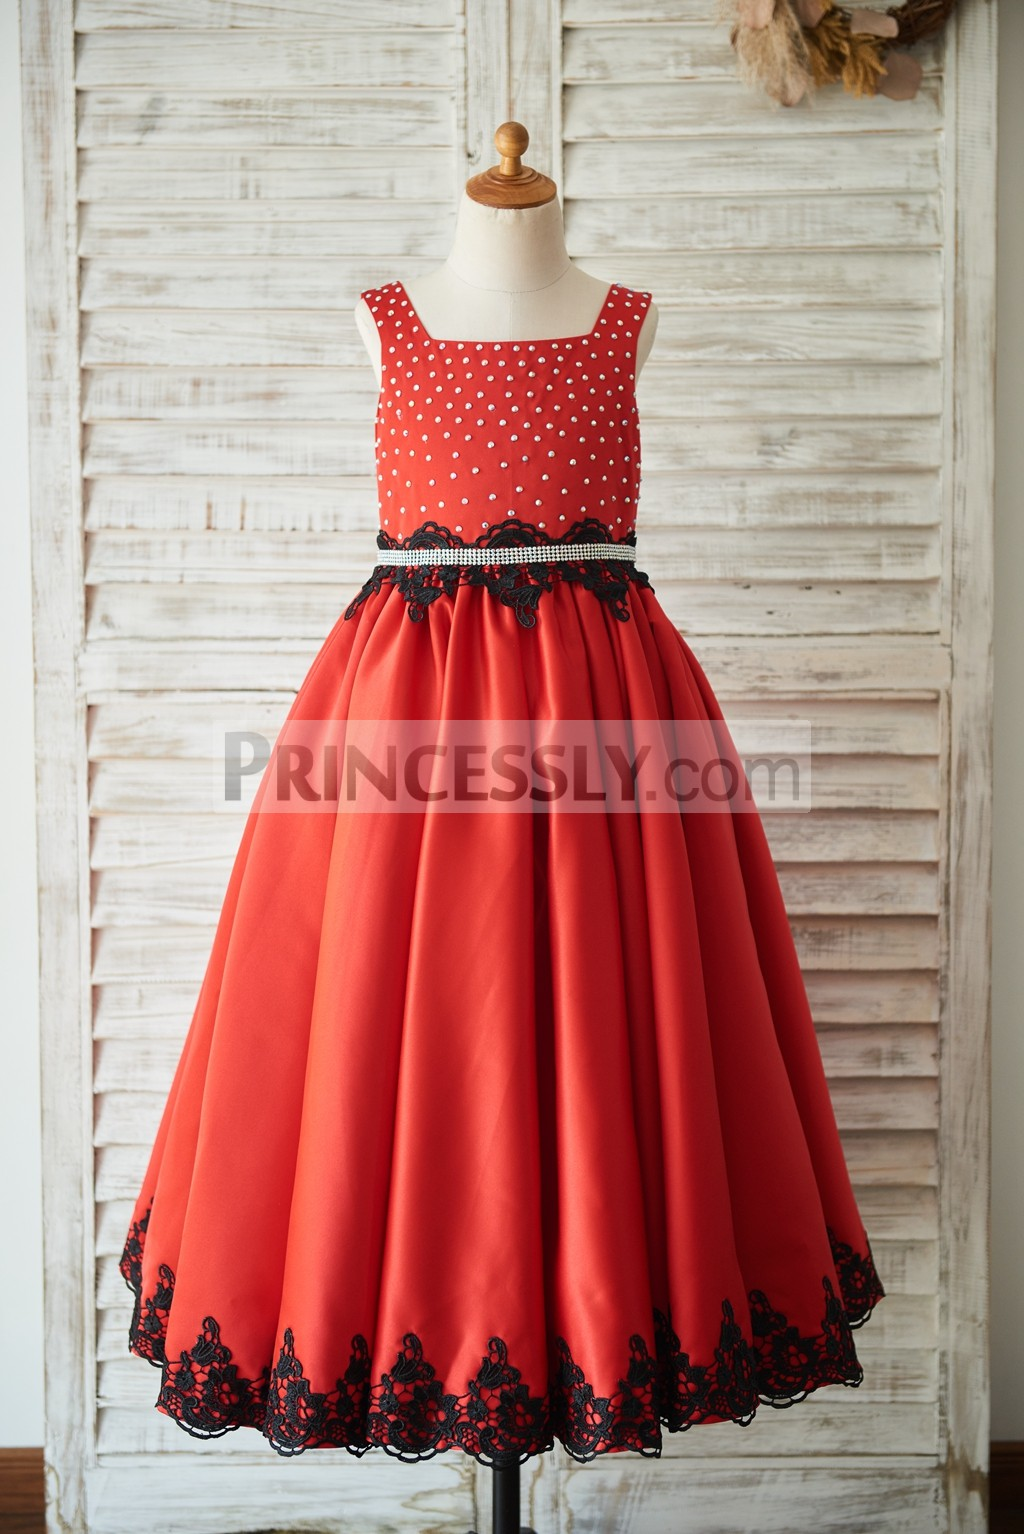 Princessly.com-K1003507-Red Satin Square Neck Wedding Party Flower Girl Dress with Beads/Black Lace Trim-31